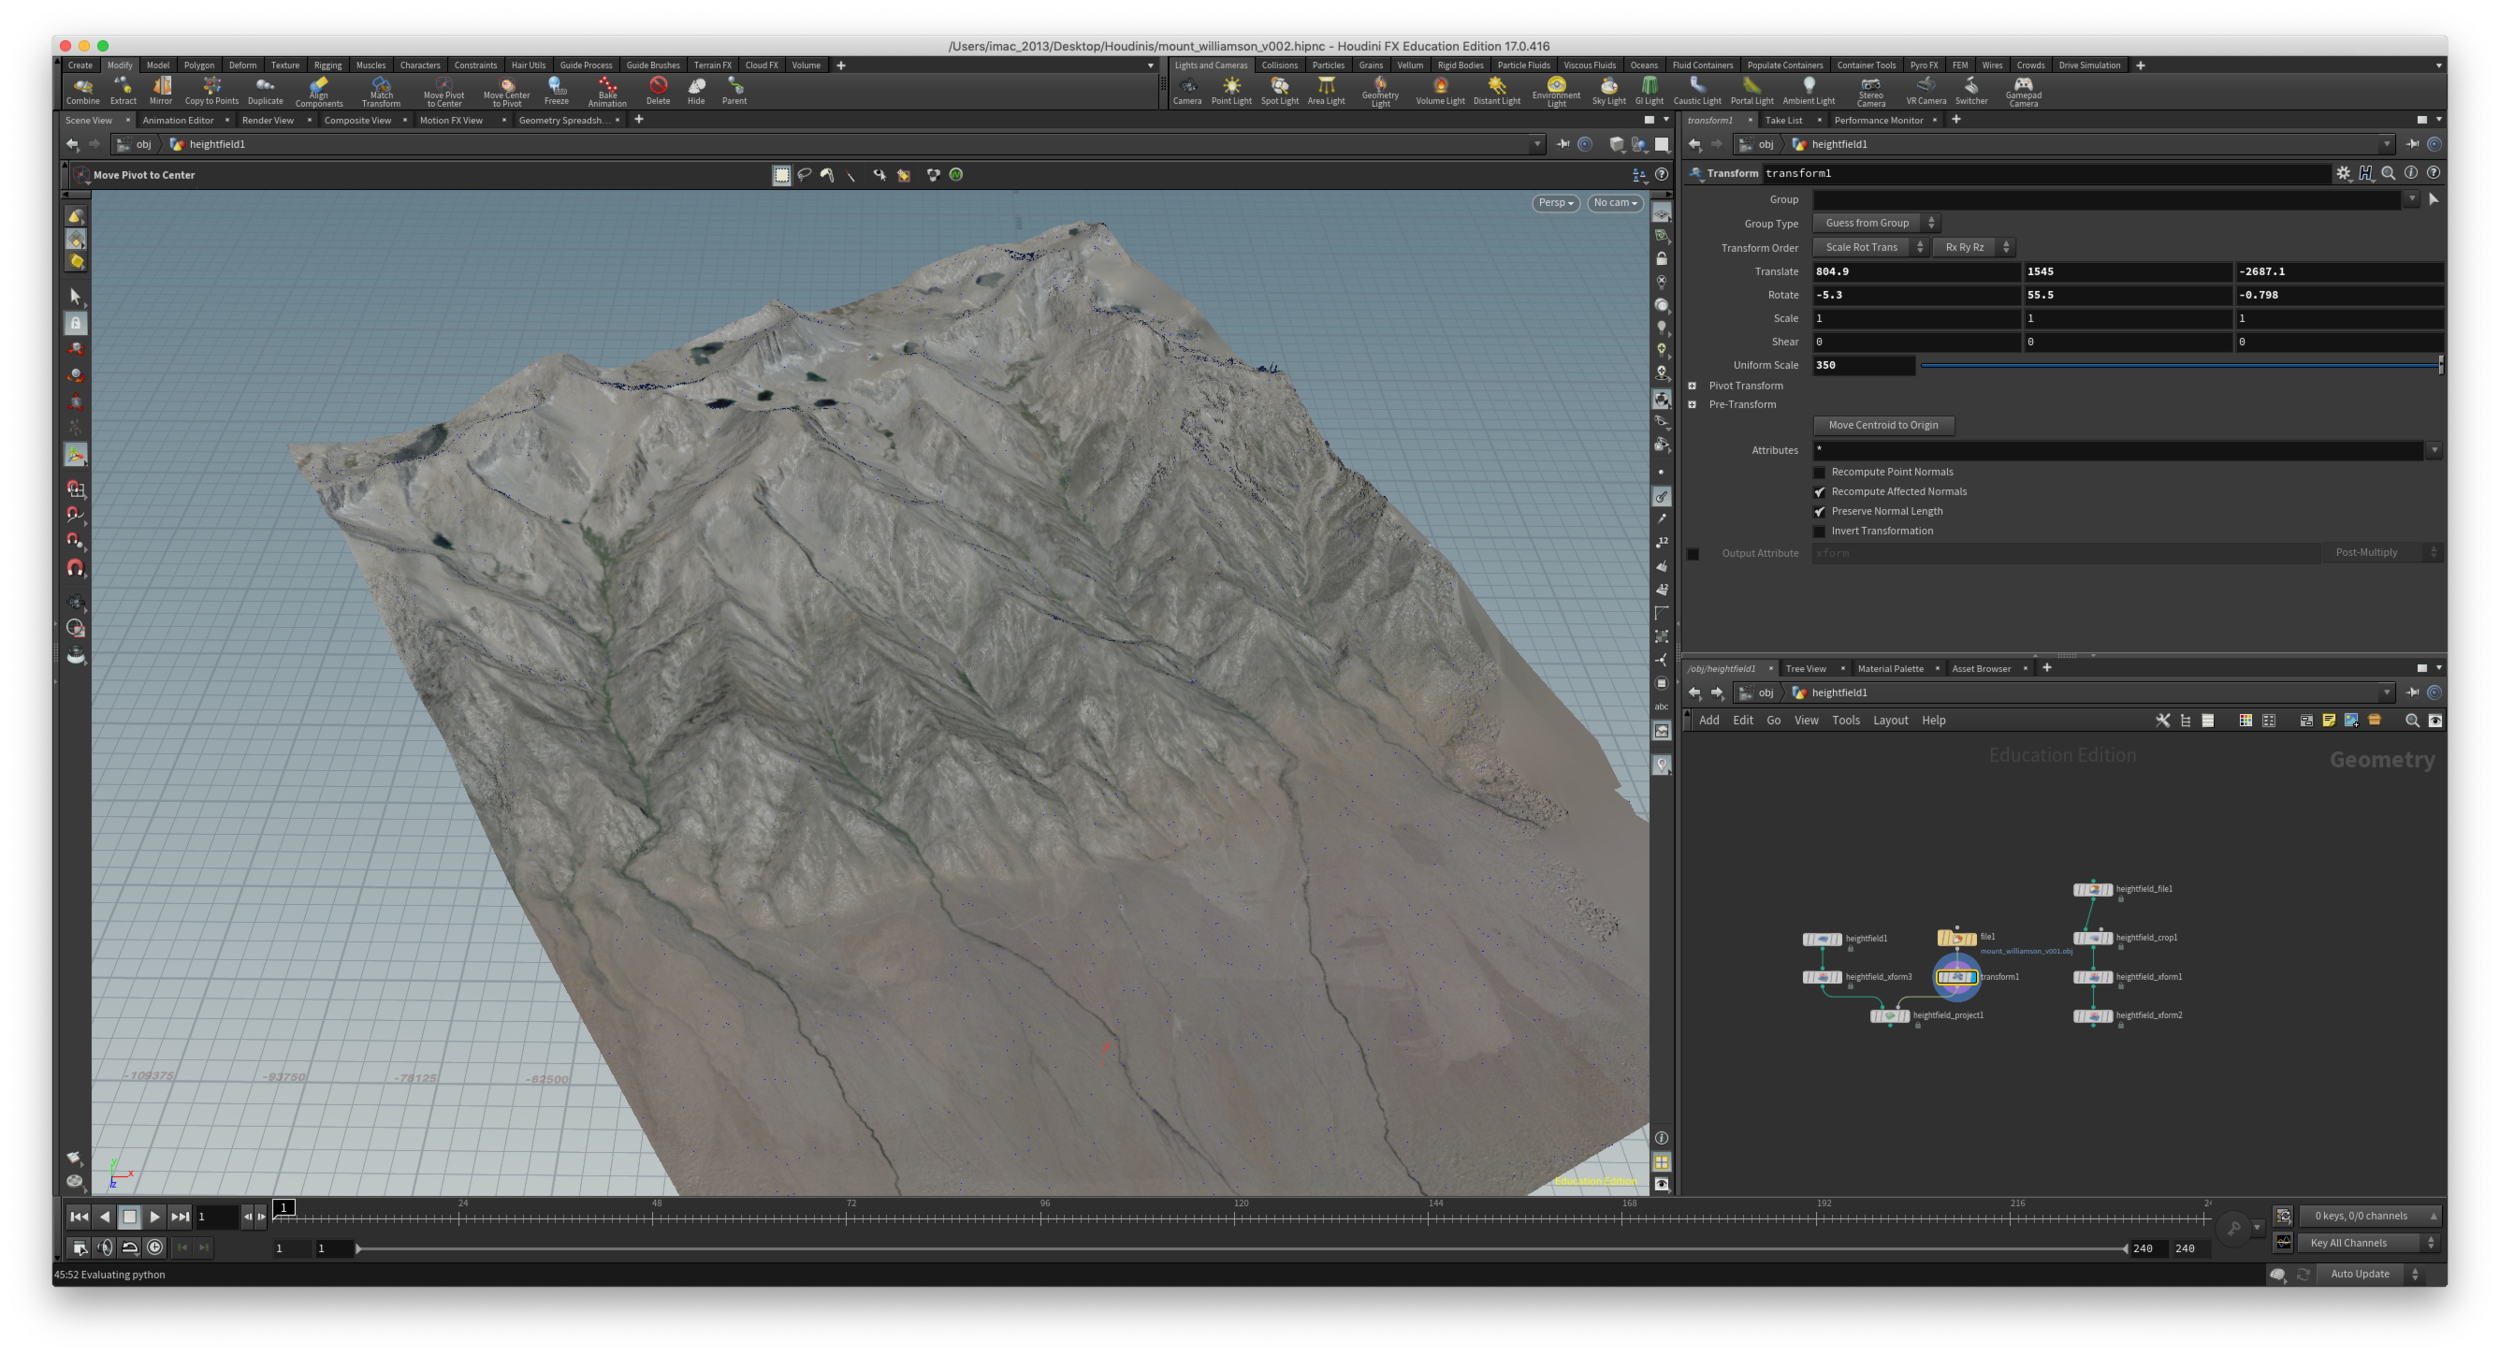 Now trying to line up MetaShape geo with my scaled geoTIFF terrain.